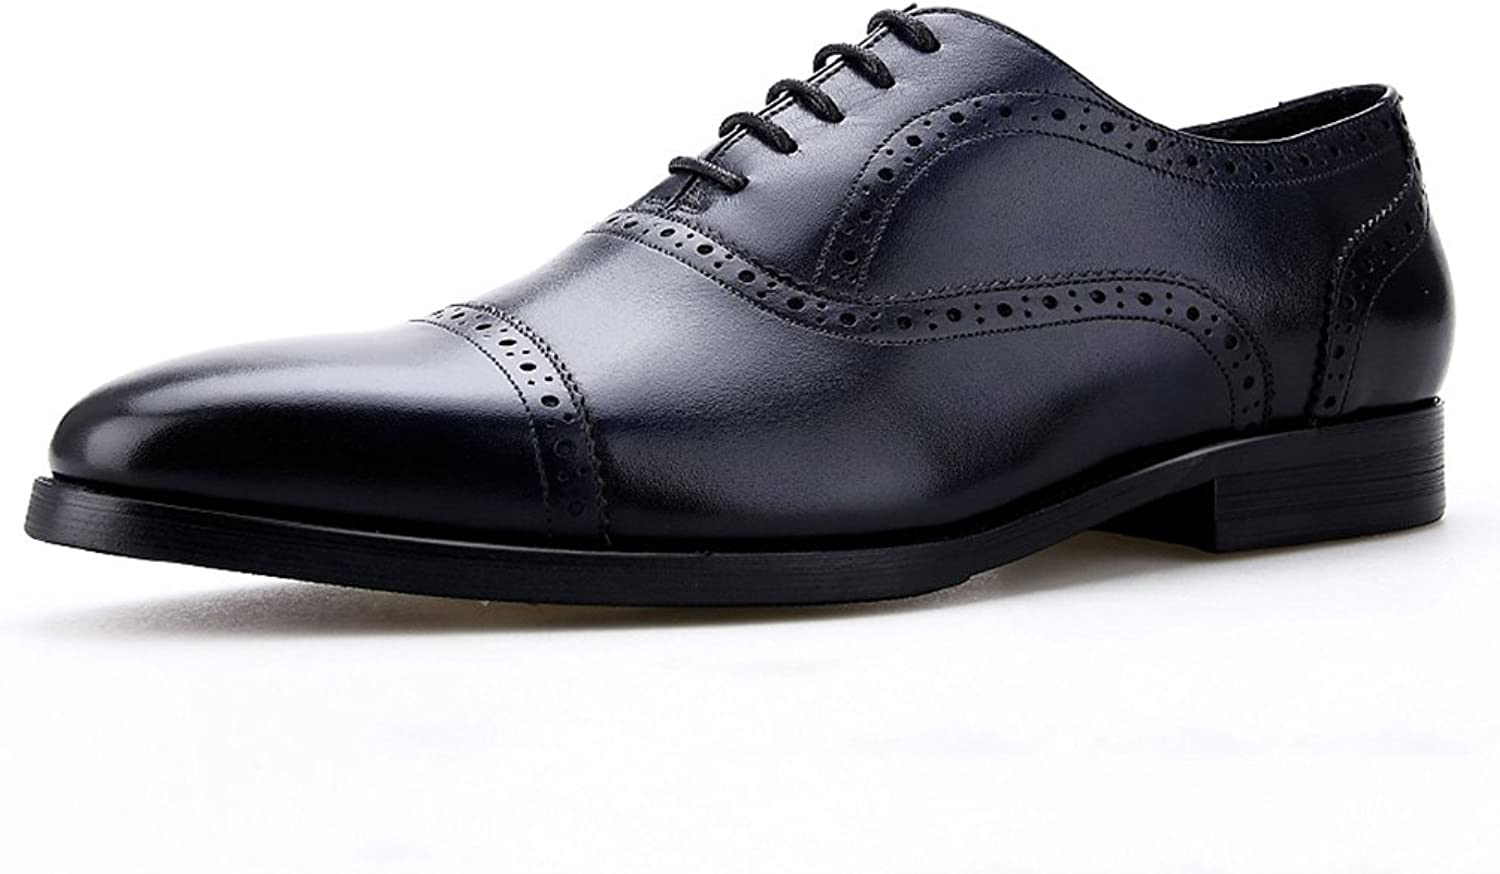 Men's leather shoes Small Square Head British Style Business Formal Wear Workplace